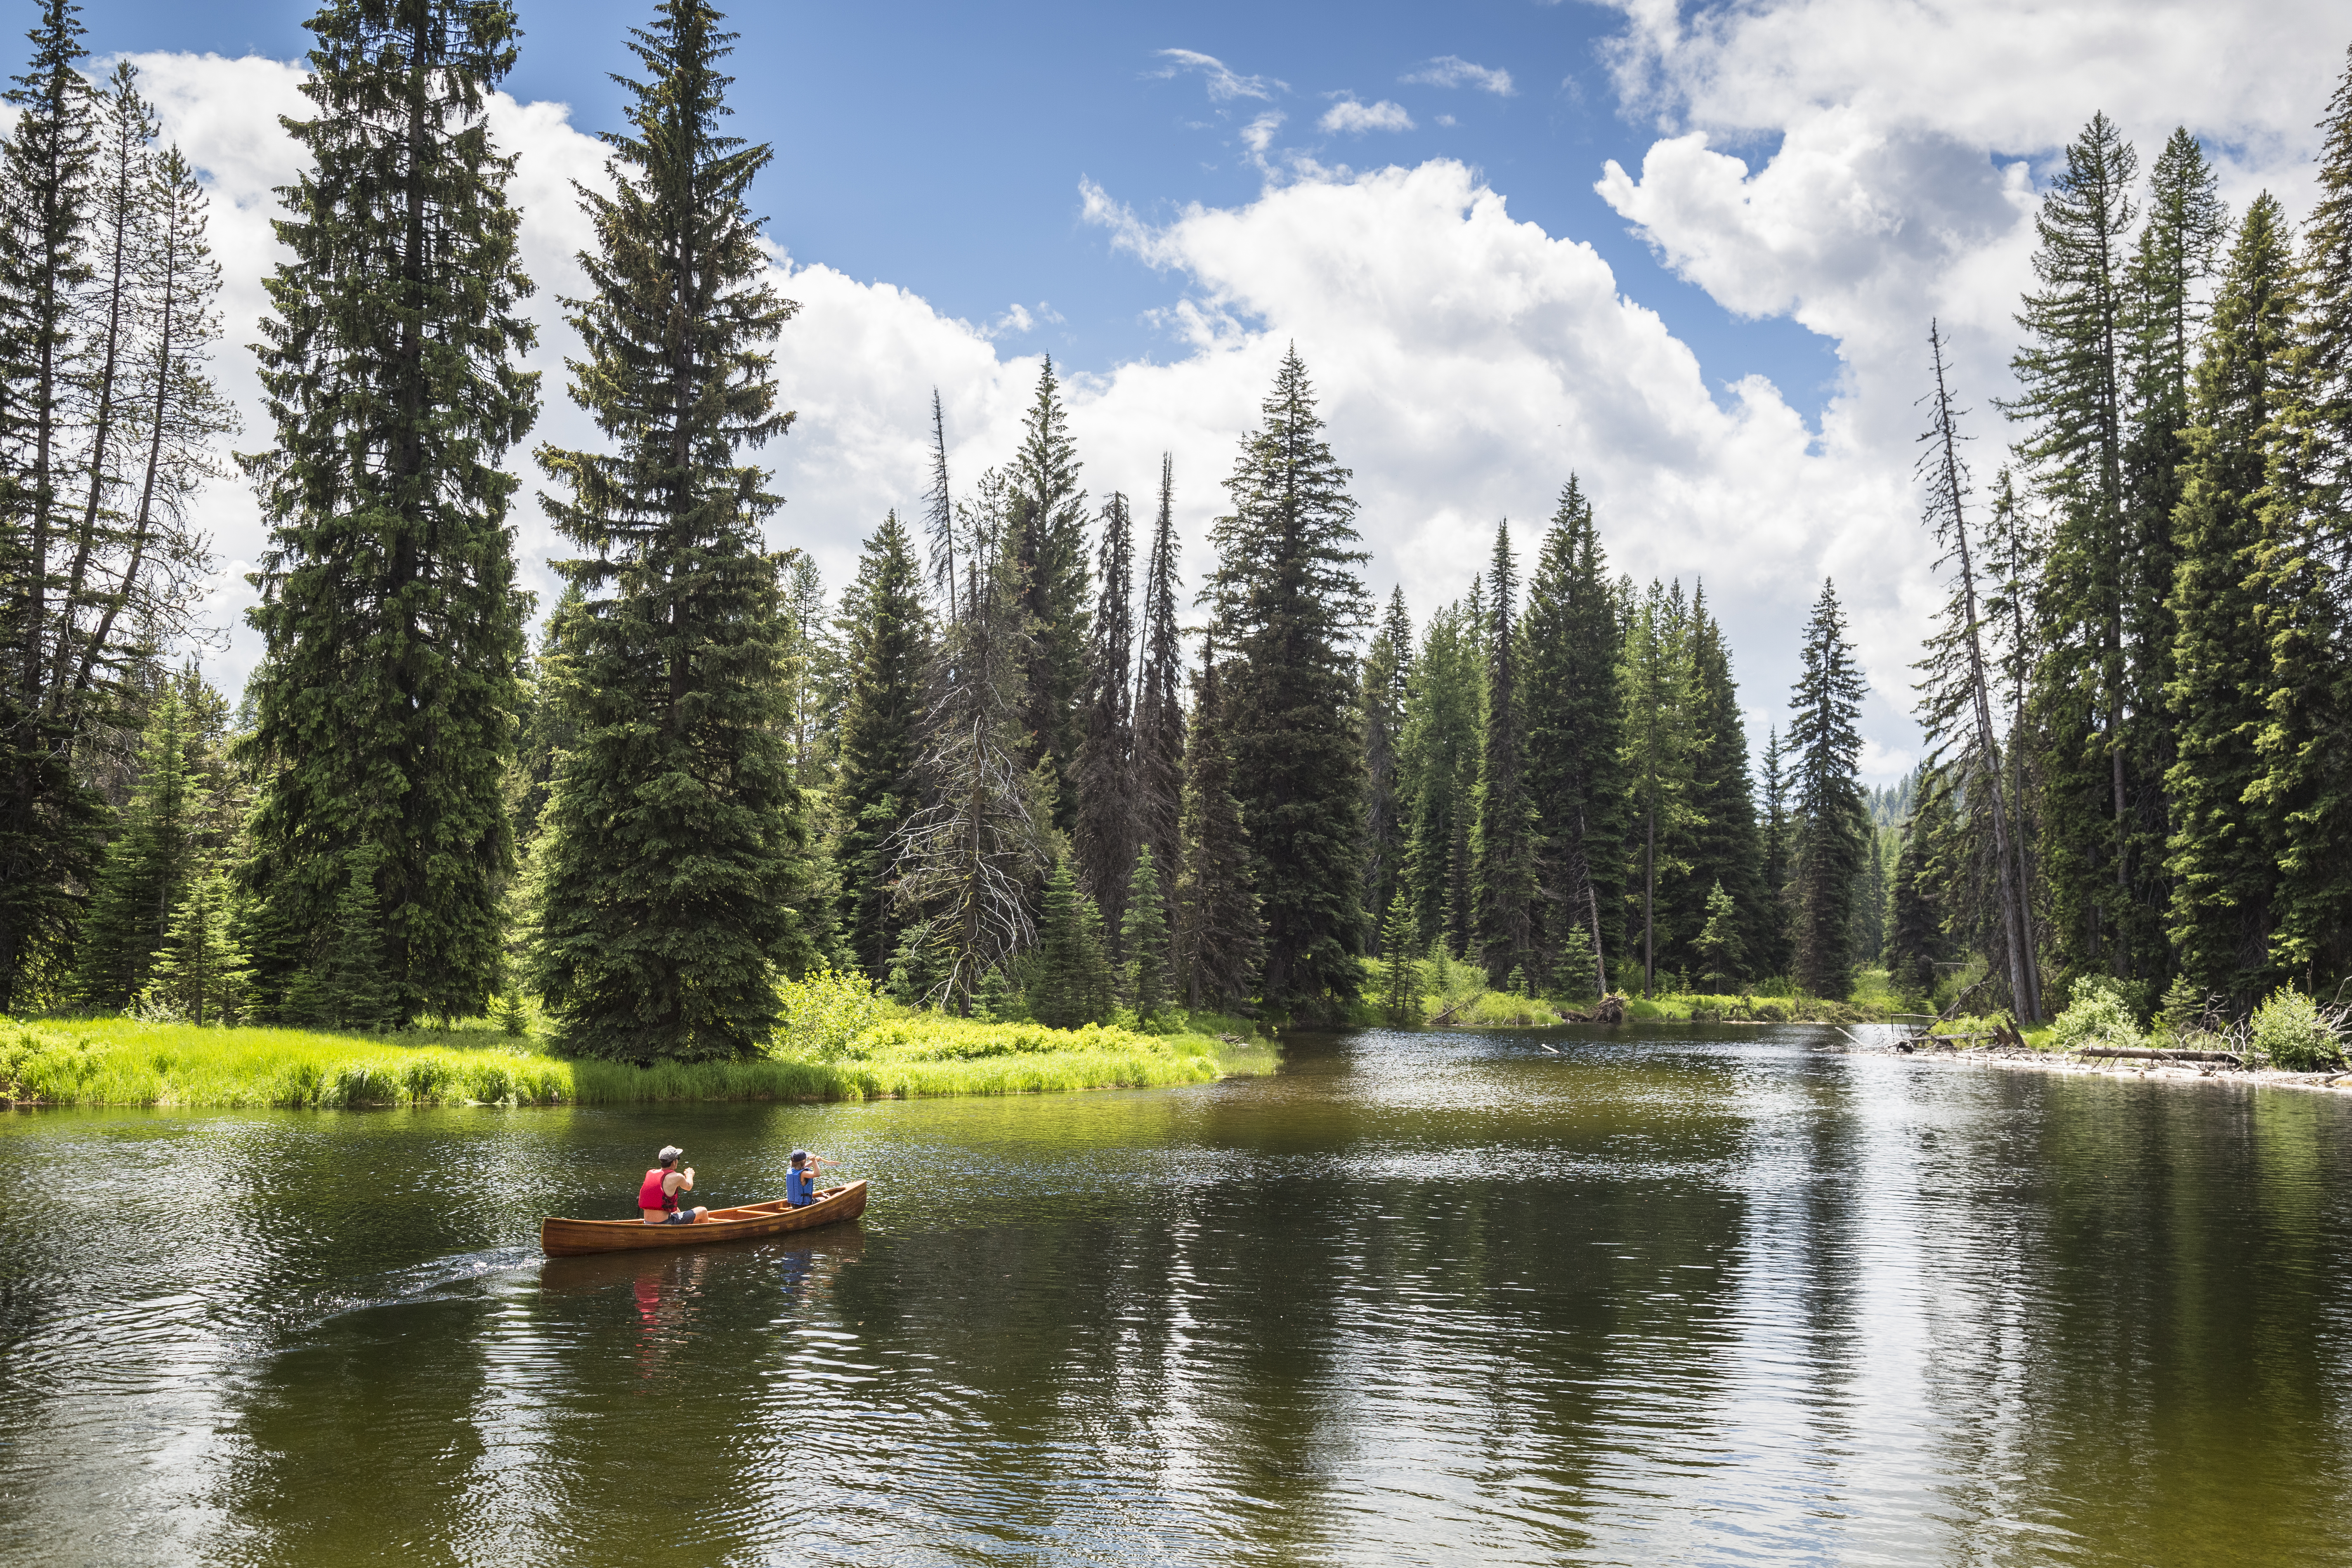 A father and son canoeing on a river.